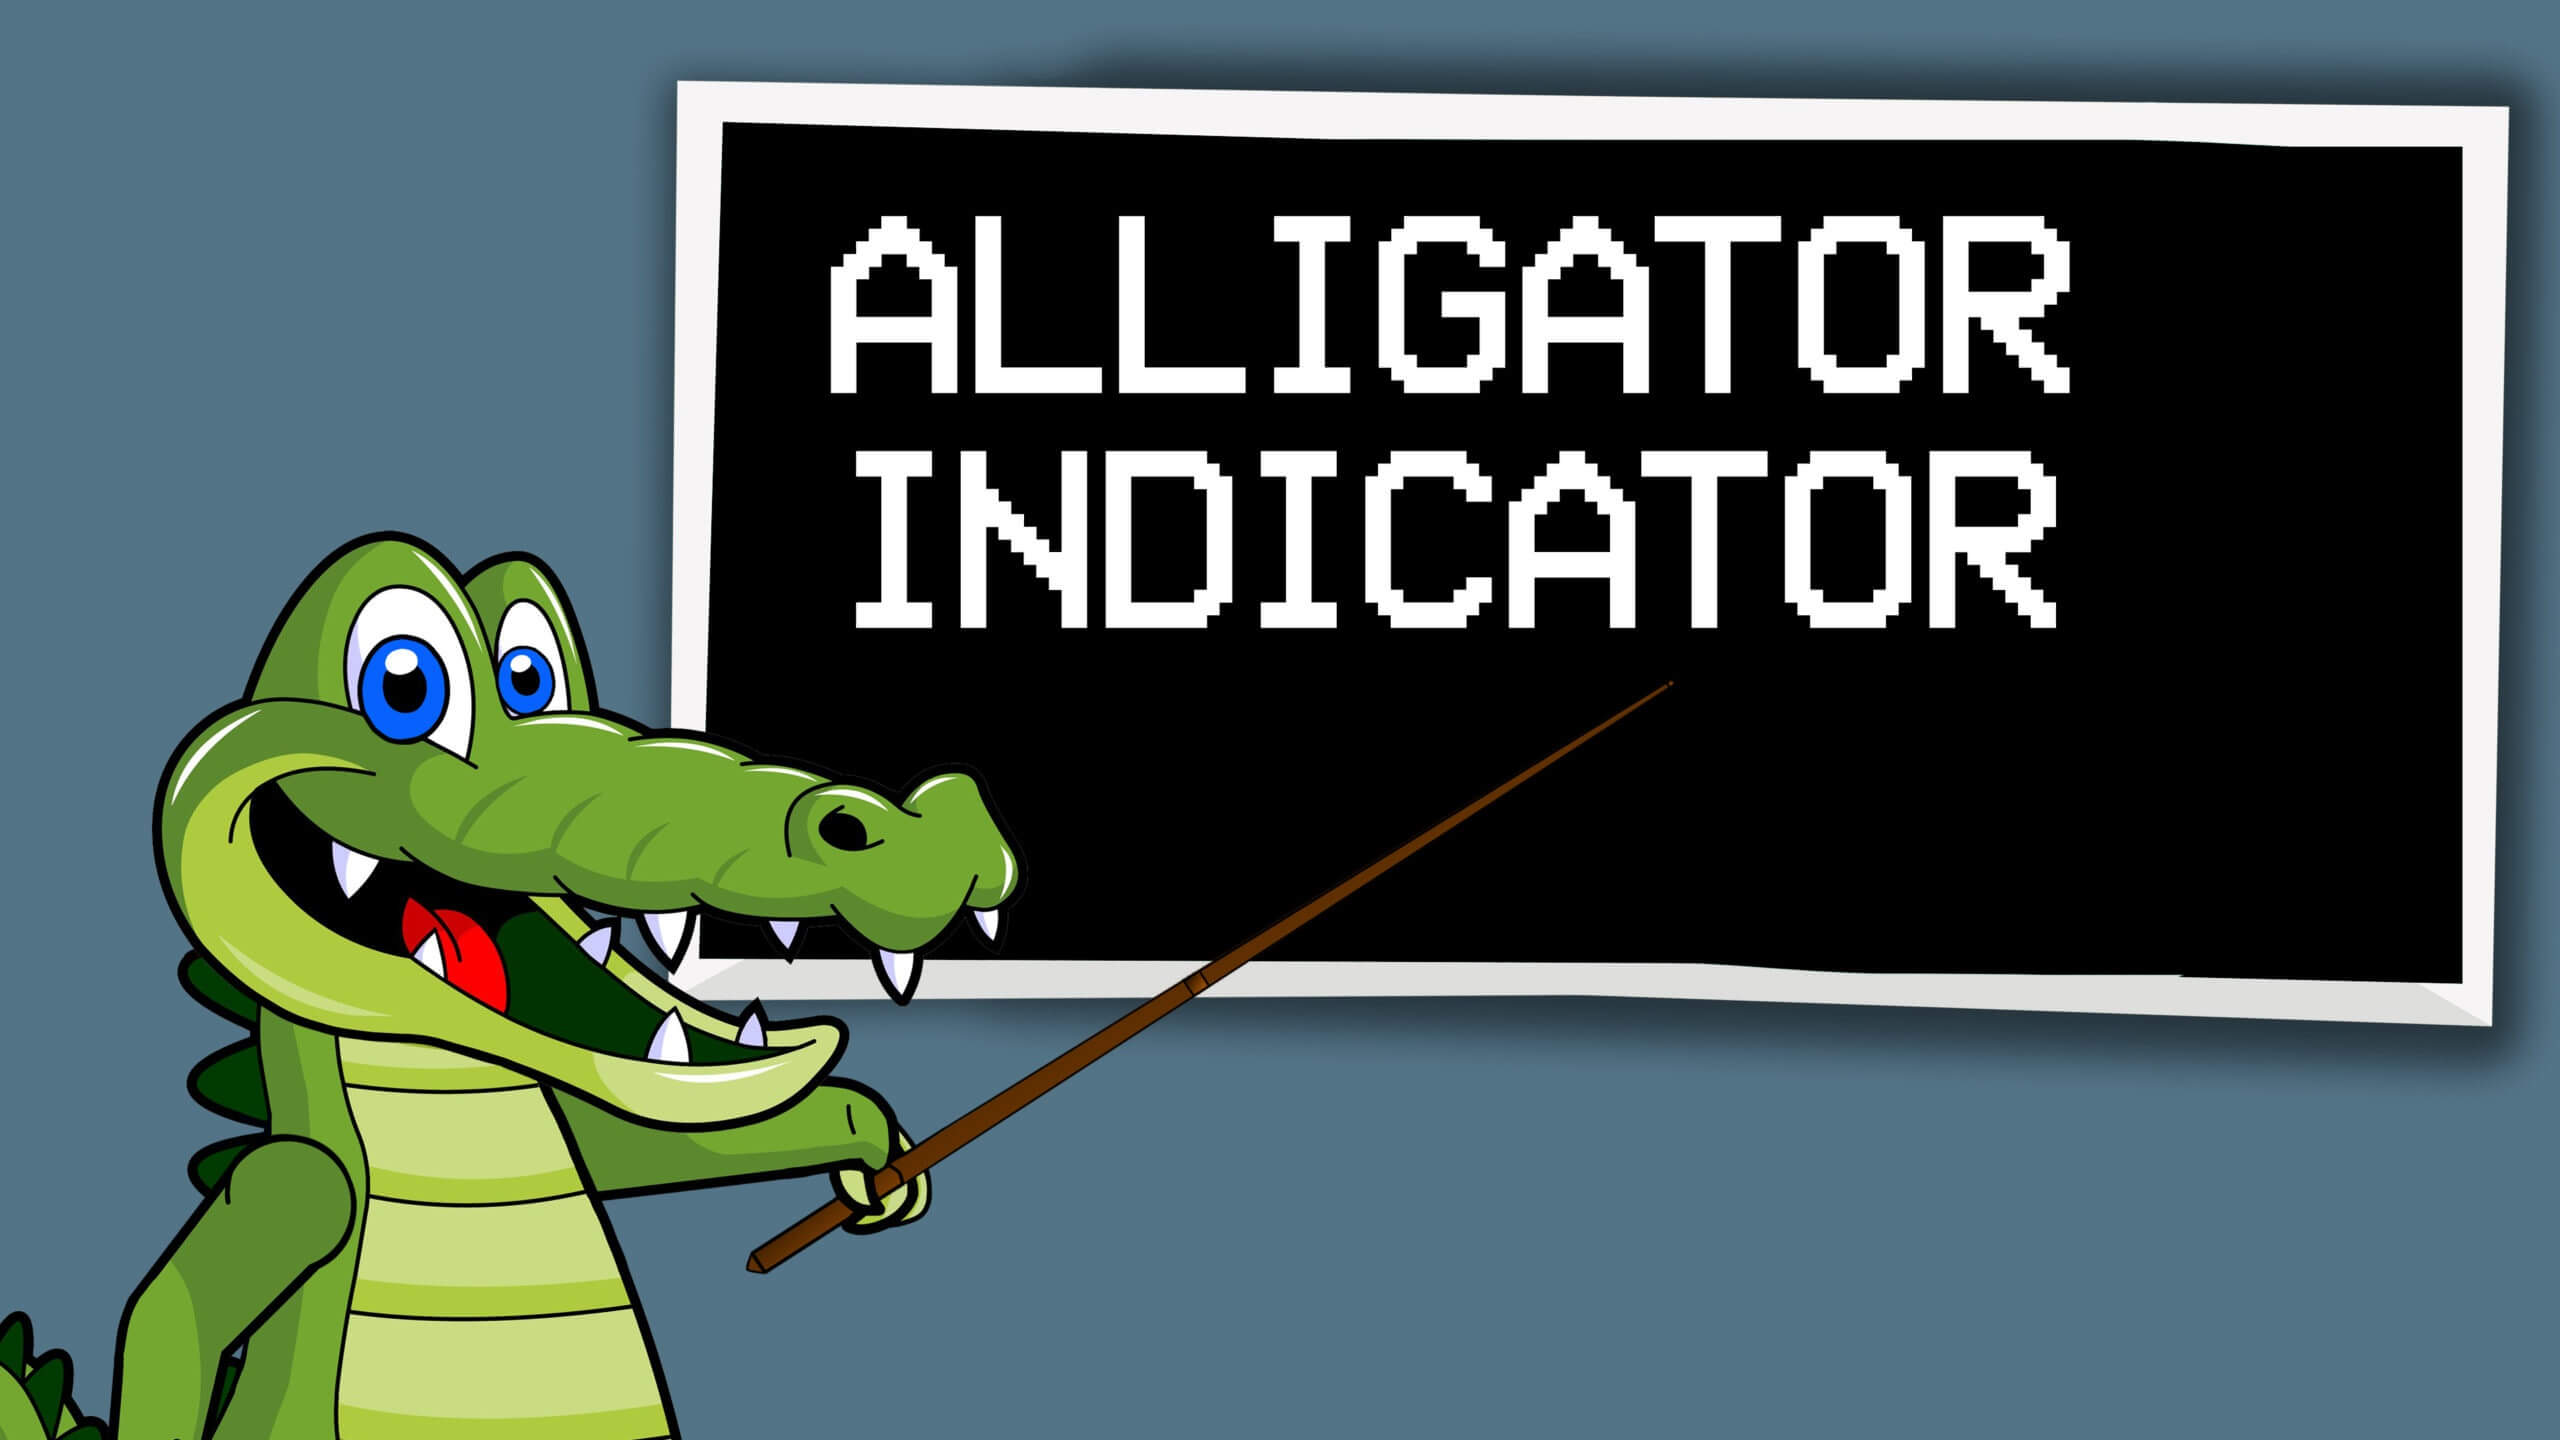 Alligator Indicator Explained - Cara Trading Forex secara efektif menggunakan indikator Williams Alligator dengan ExpertOption